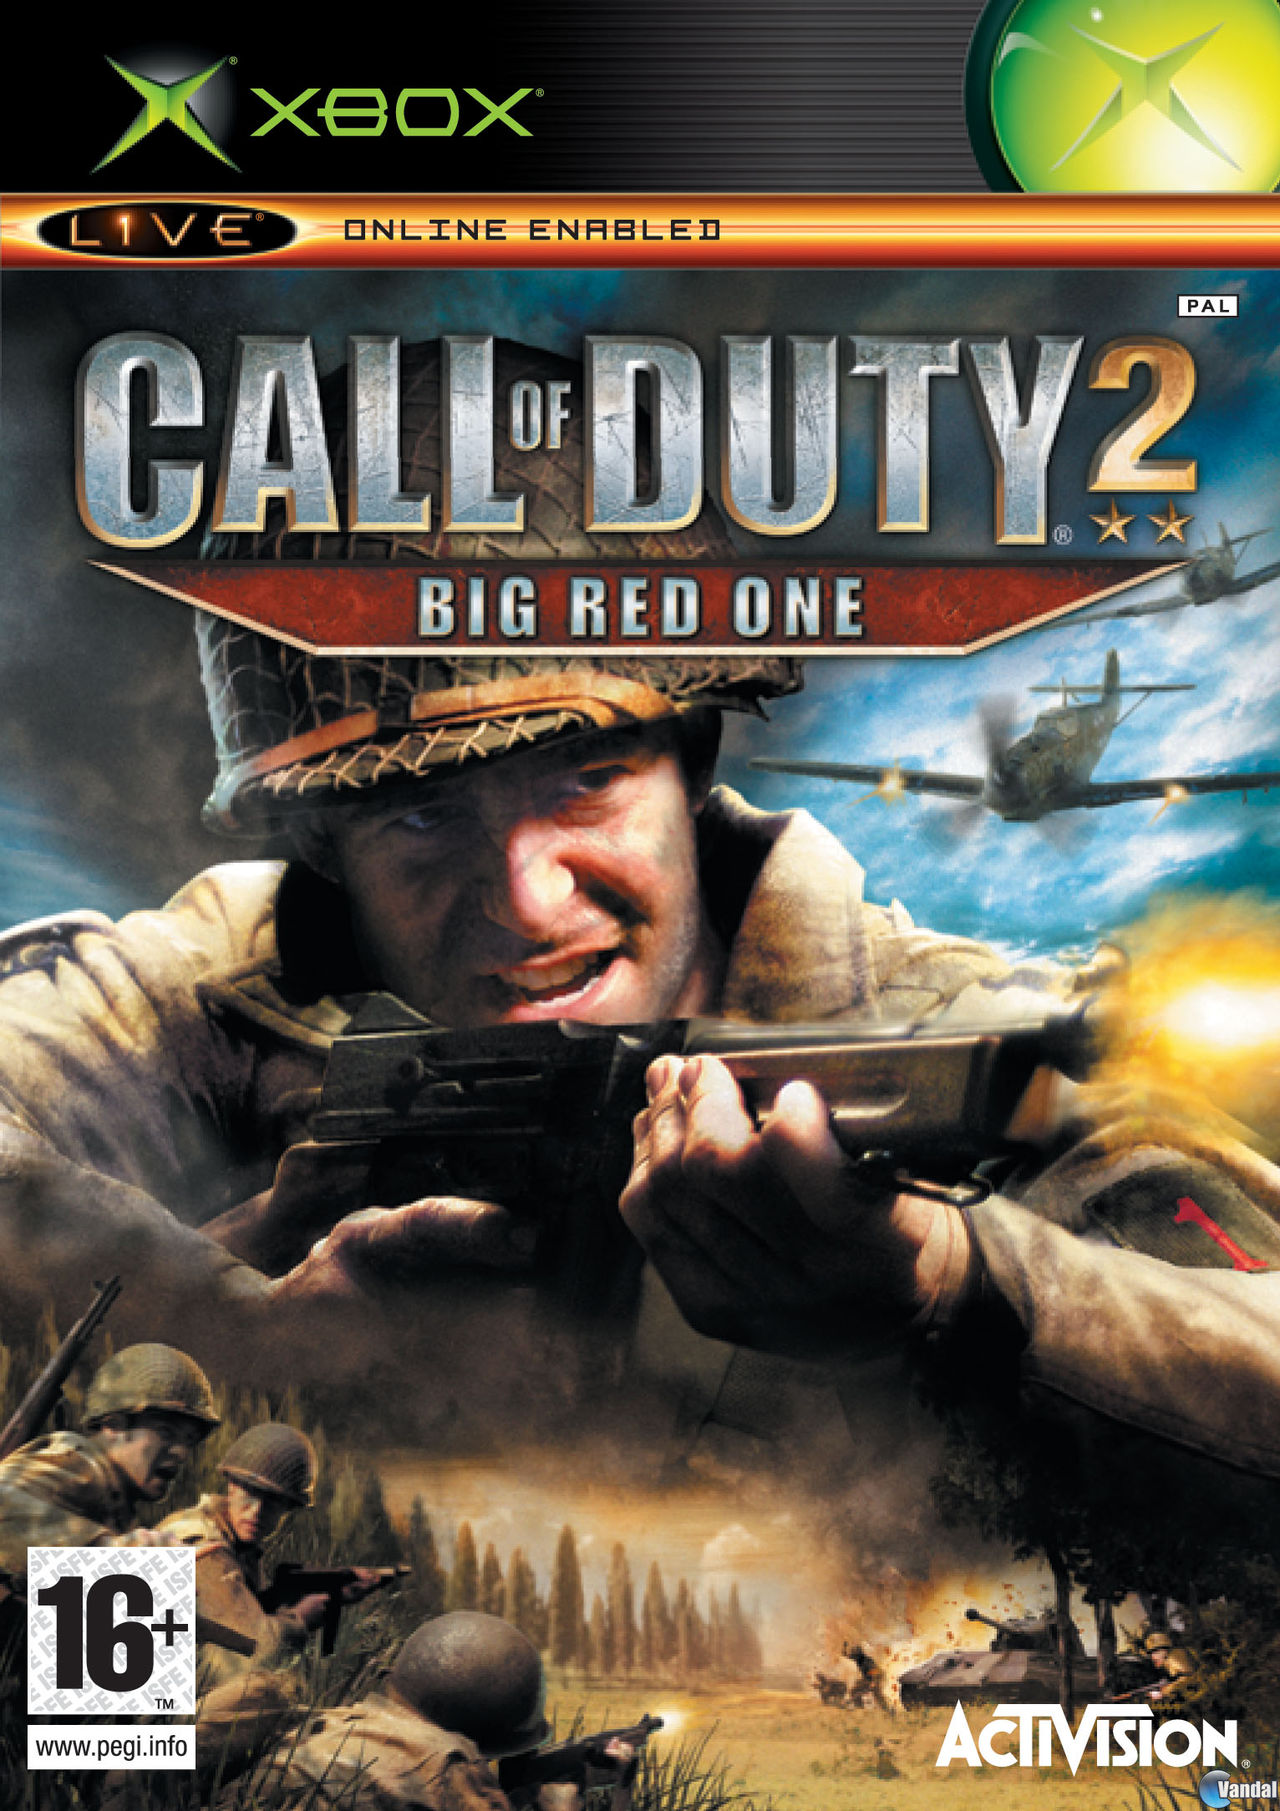 Imagen 15 de Call of Duty 2: Big Red One para Xbox